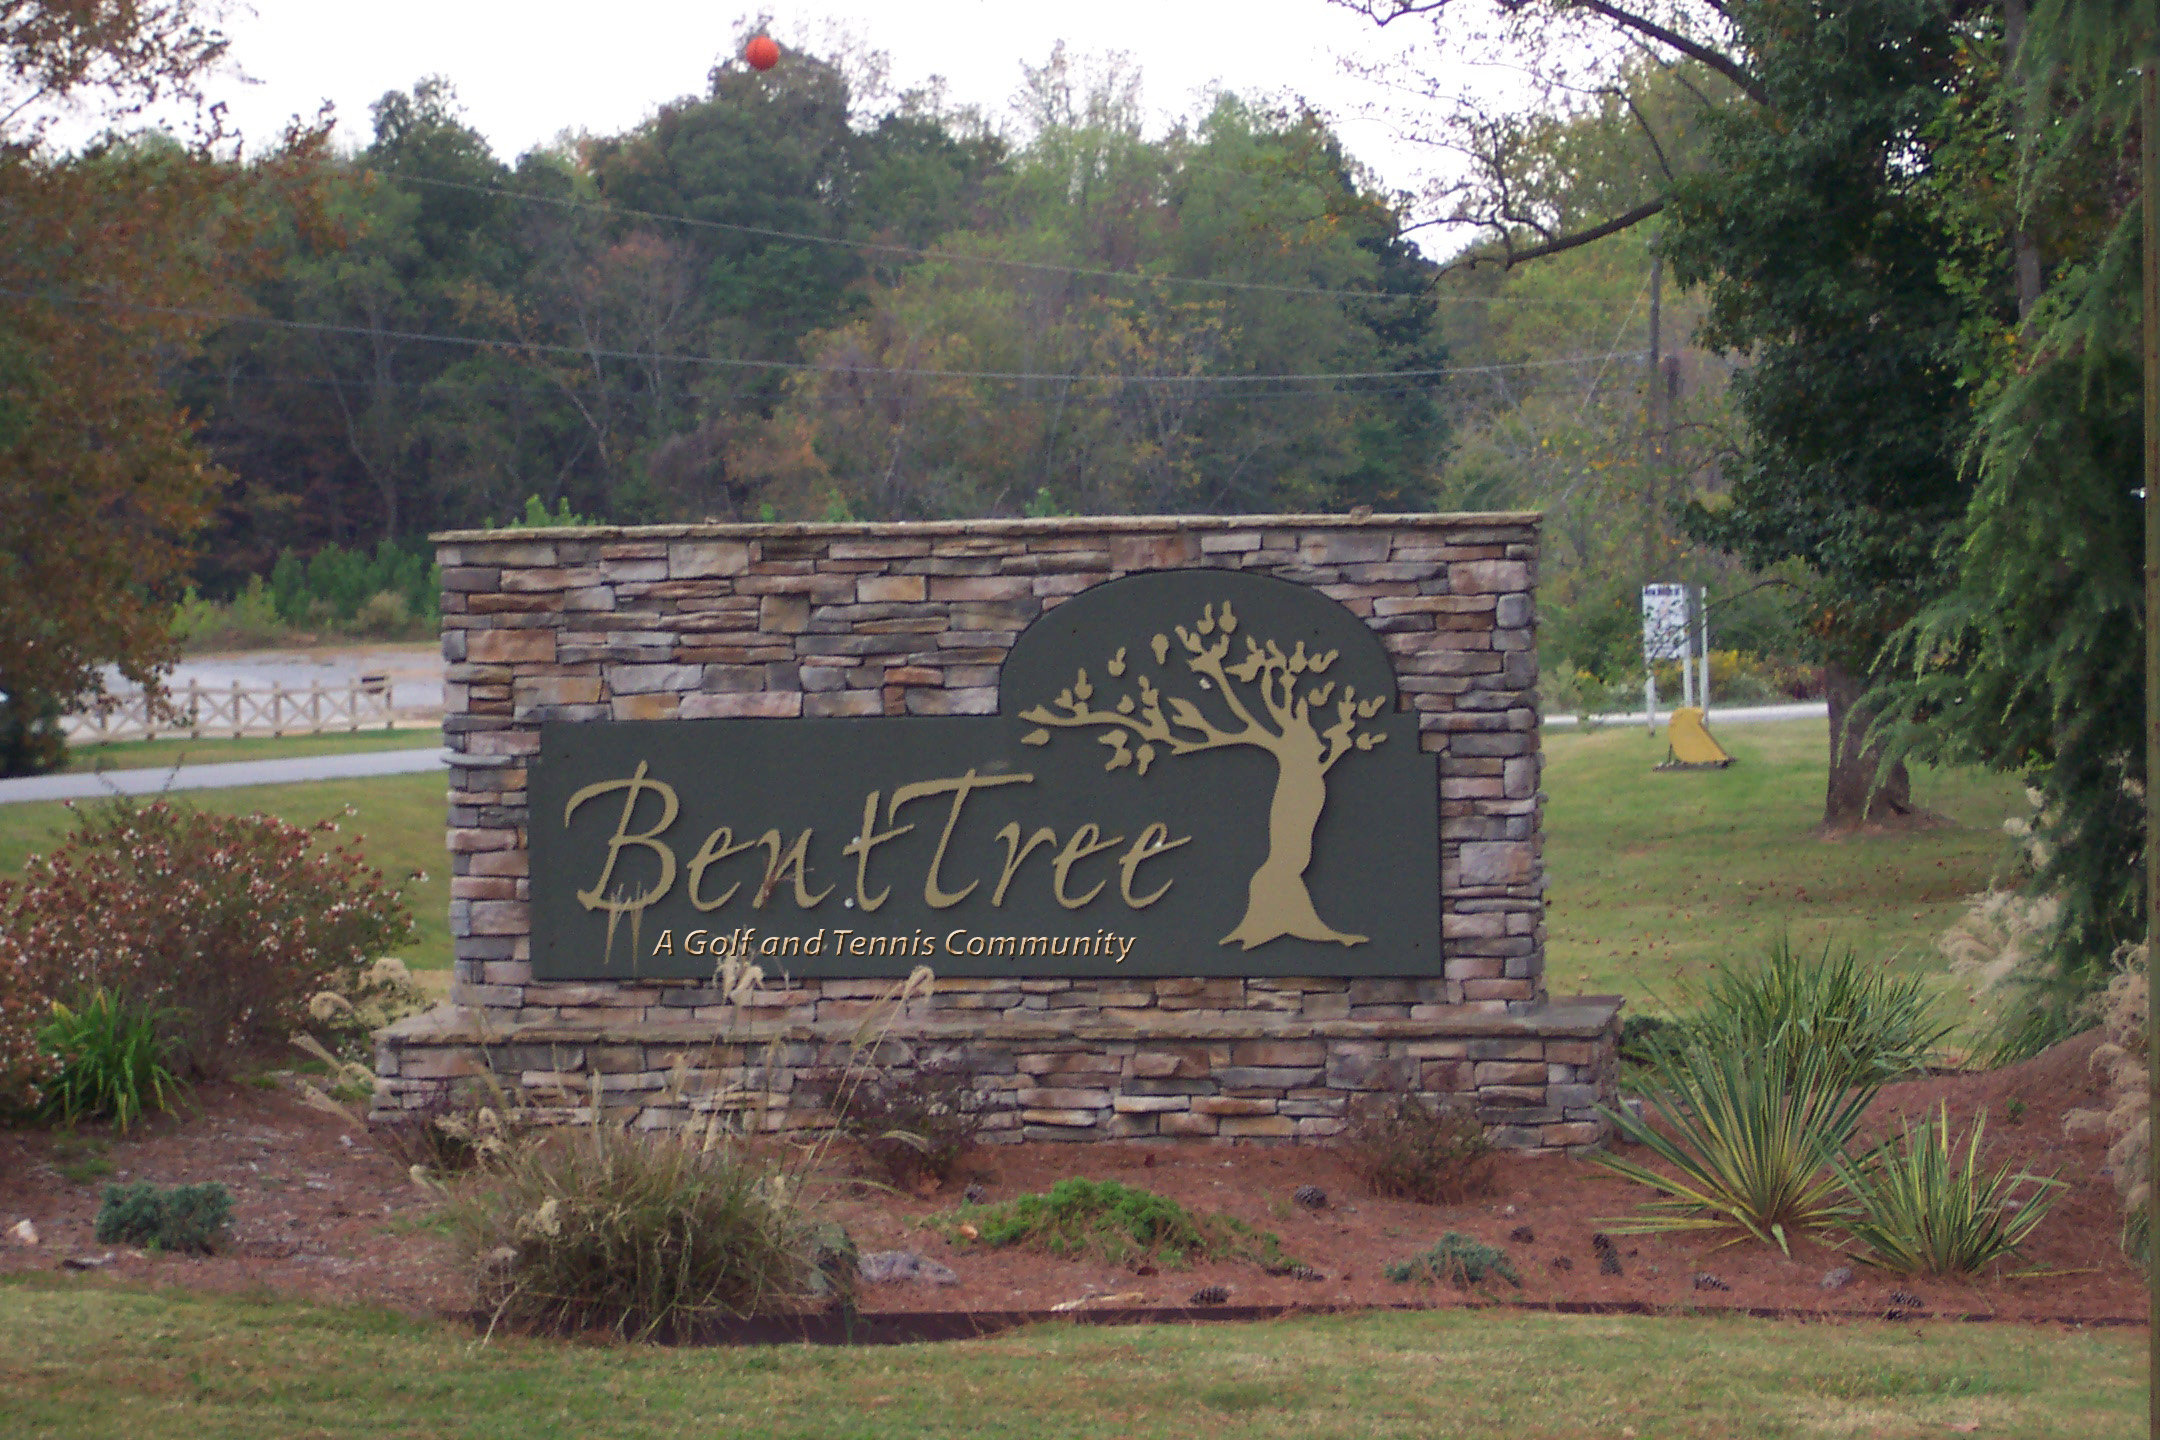 Example of the addition to the sign as proposed to the Board in 2011